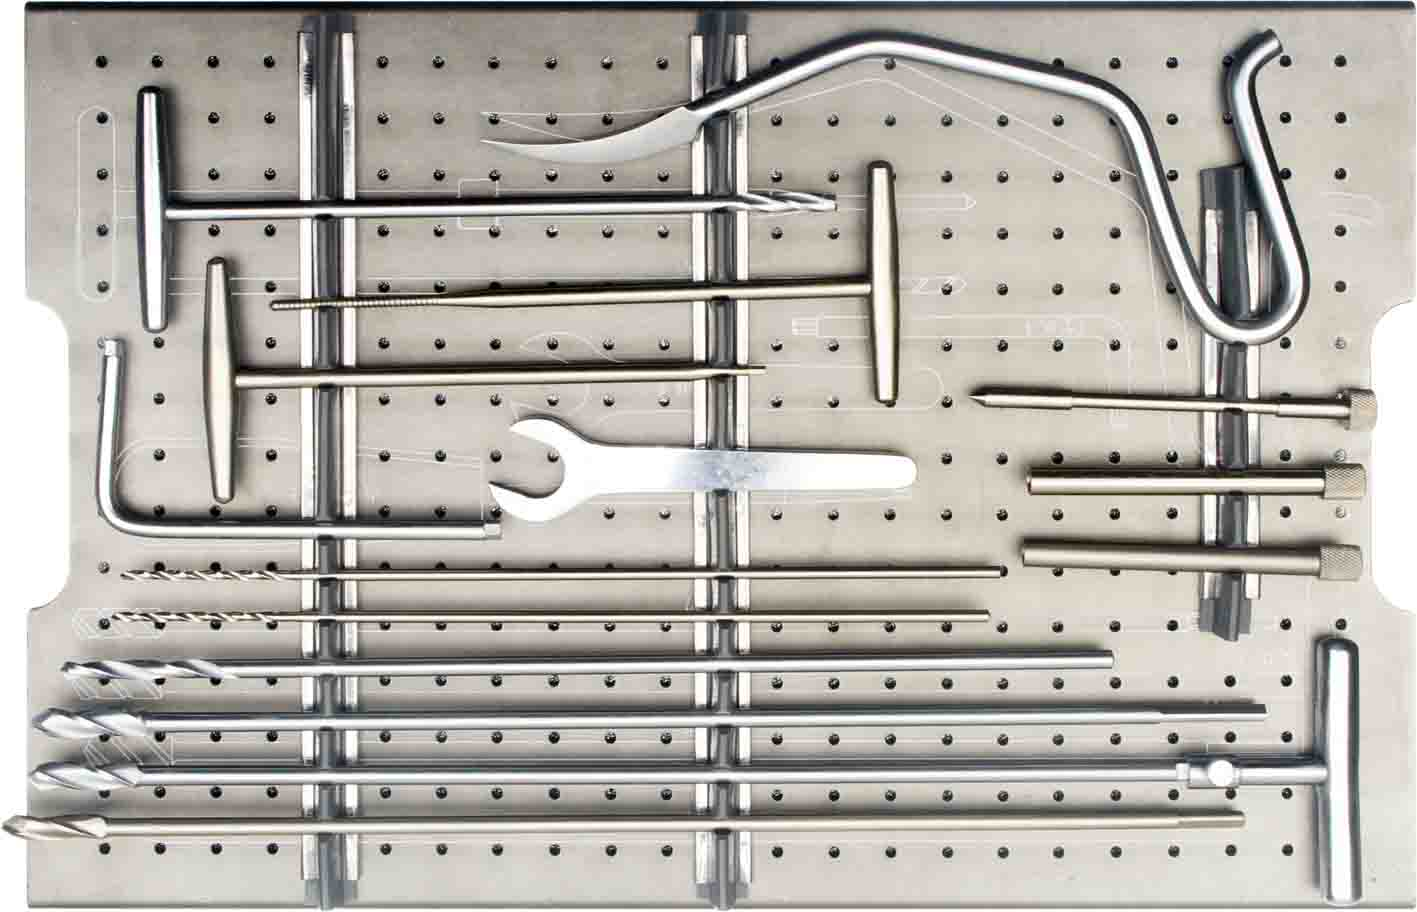 Cannulated Interlocking Nails Instrument